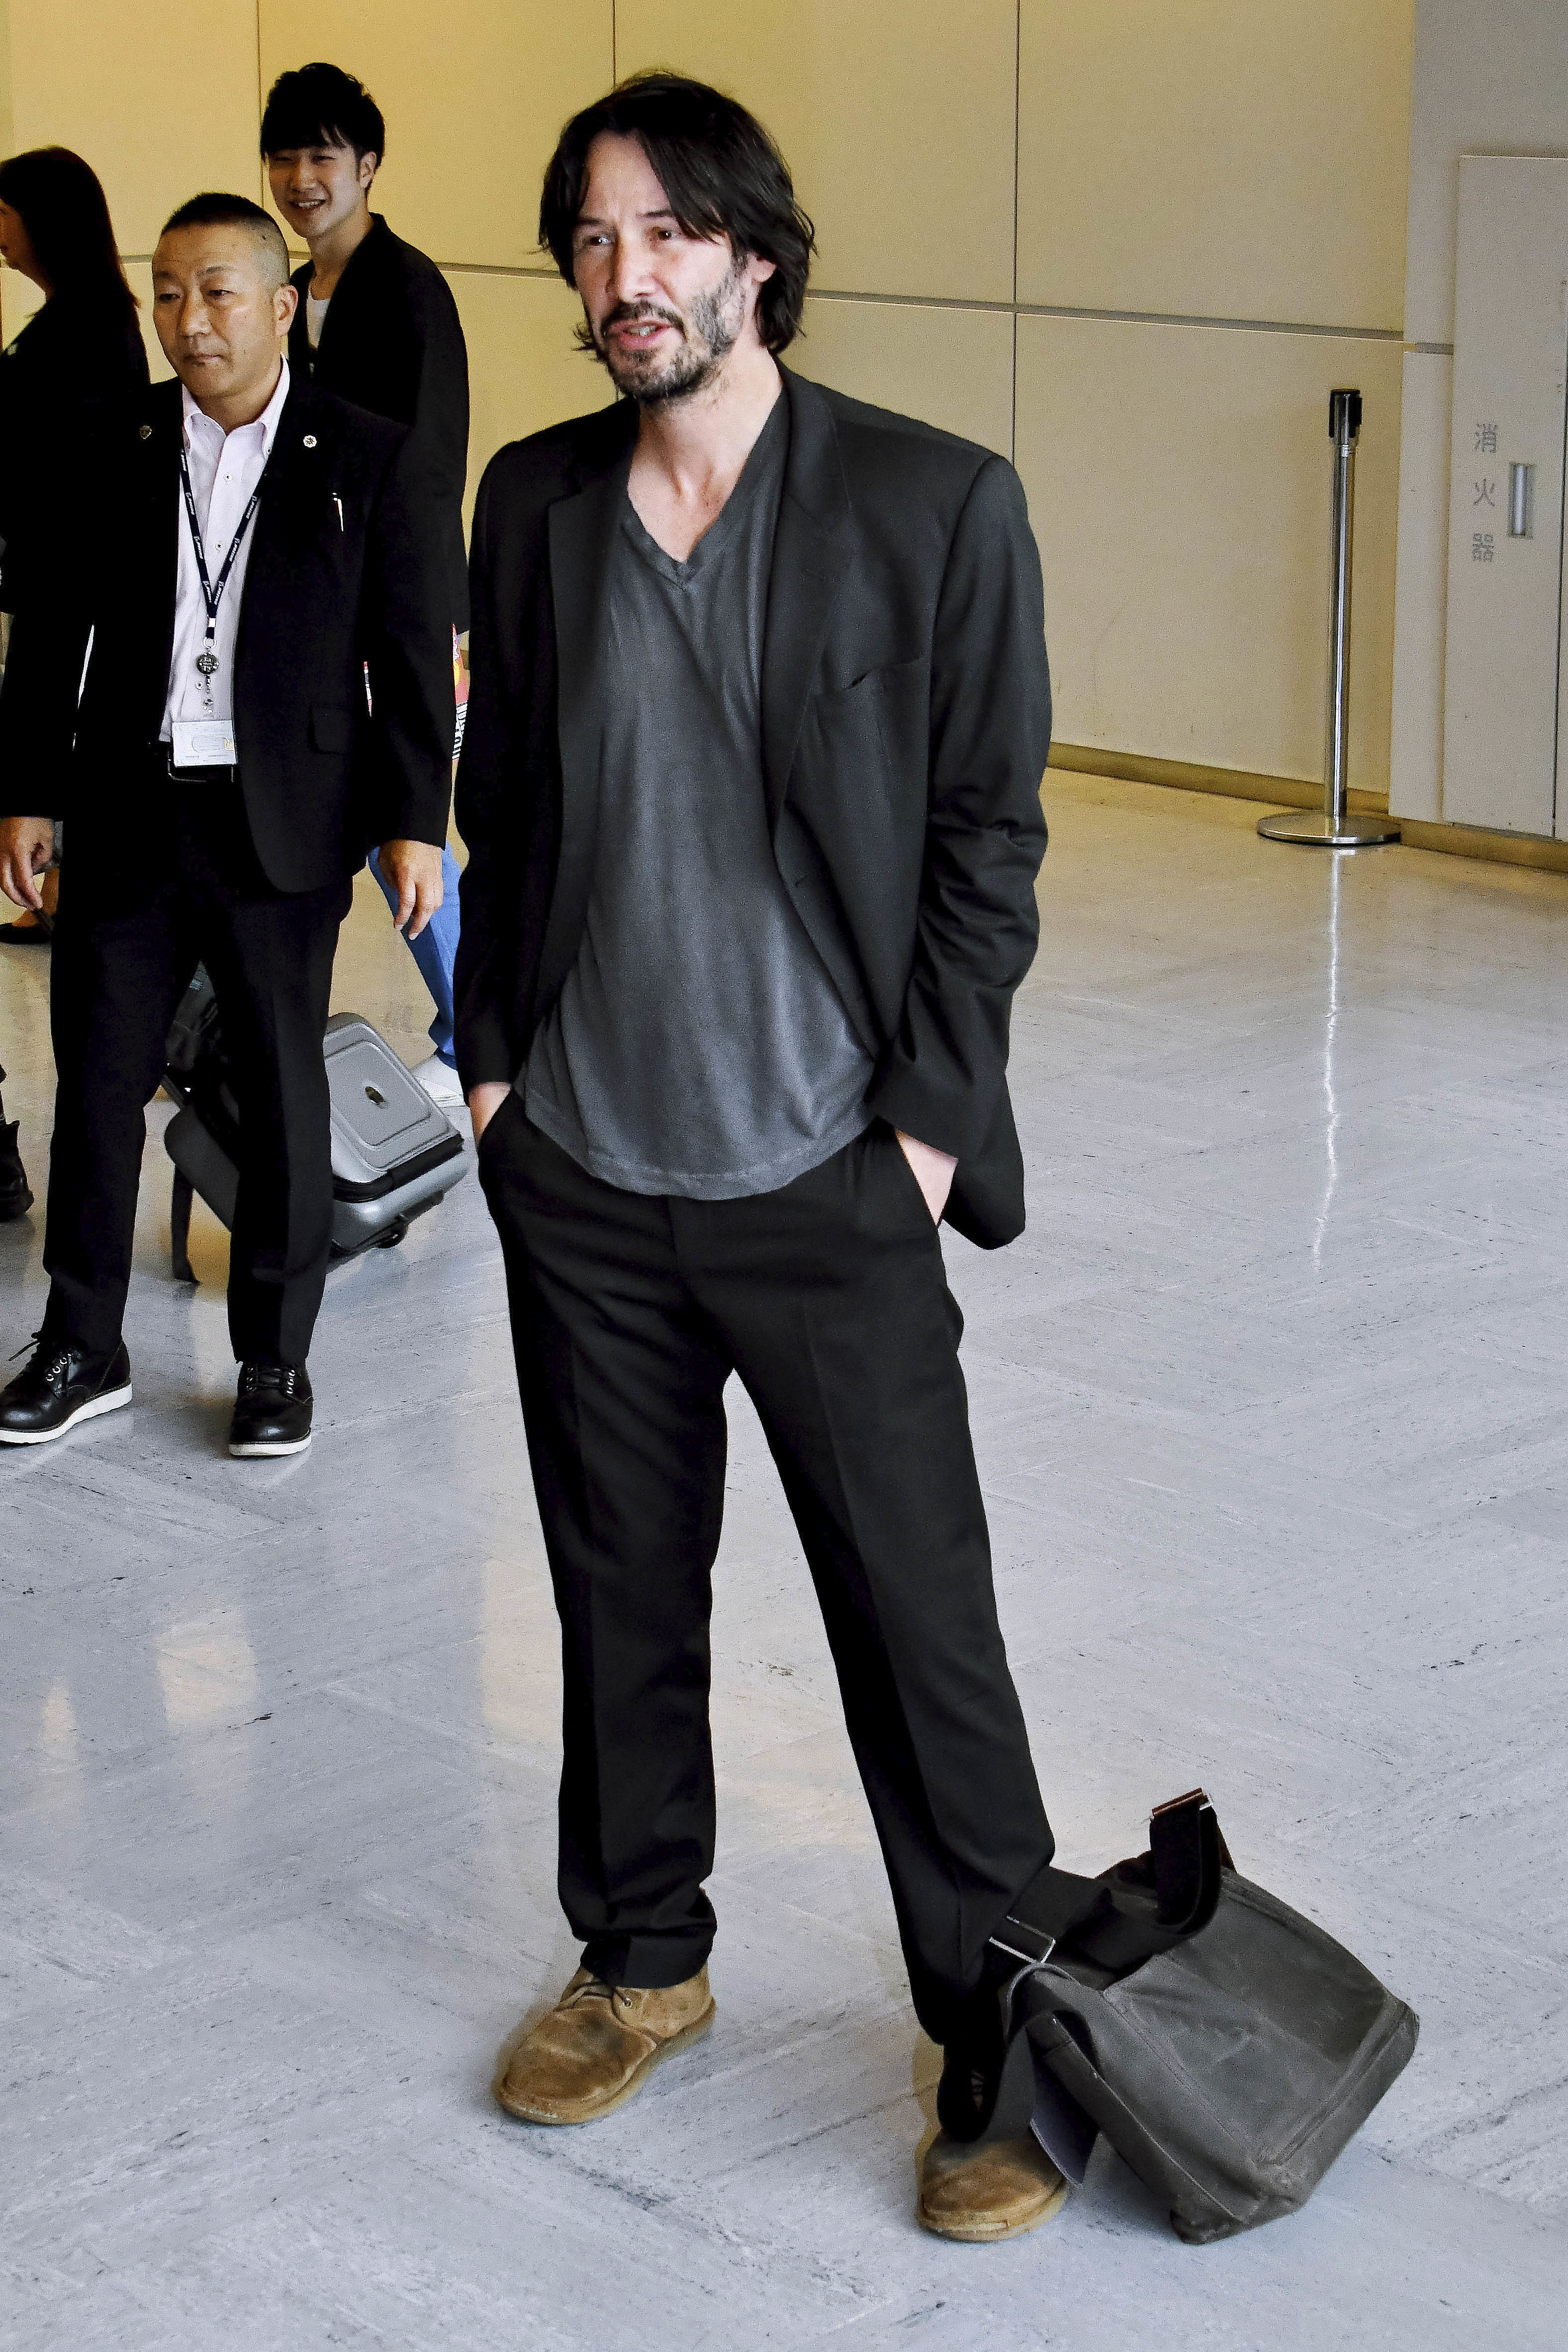 Keanu Reeves Has Been Wearing the Same Outfit for 20 Years